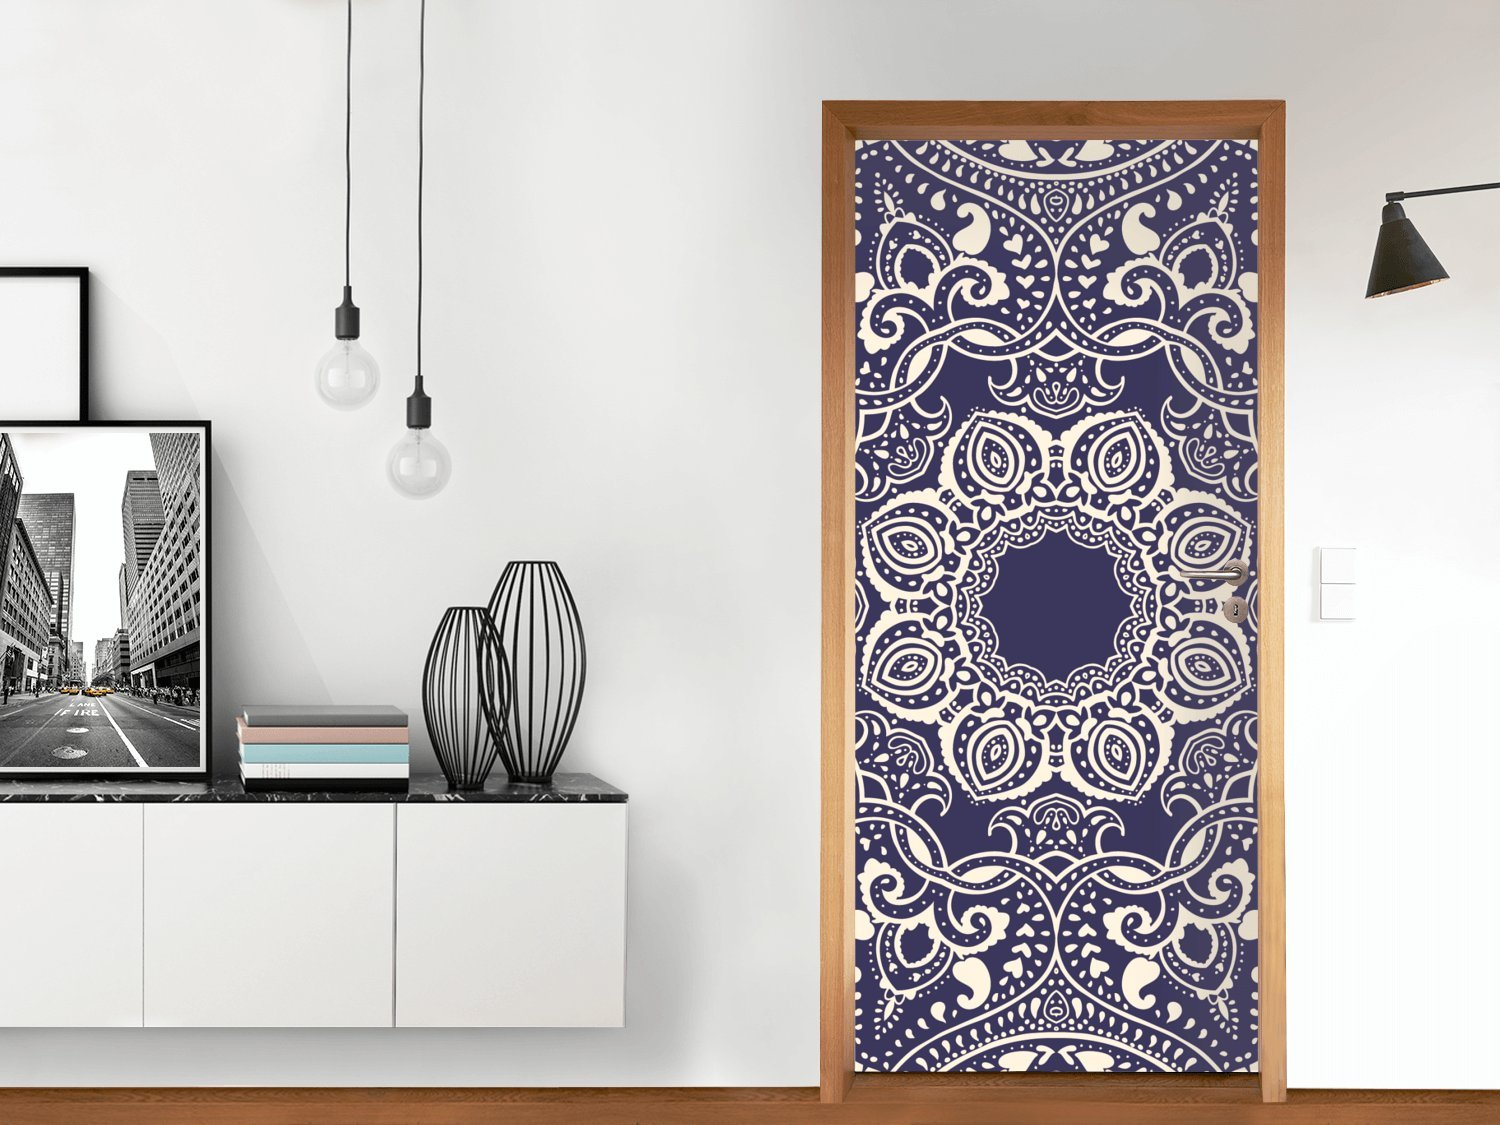 creatisto Kitchen Door 71x197 cm | Wallpaper Design Wrap Film Decoration Home Design | Various Designs creatisto GmbH